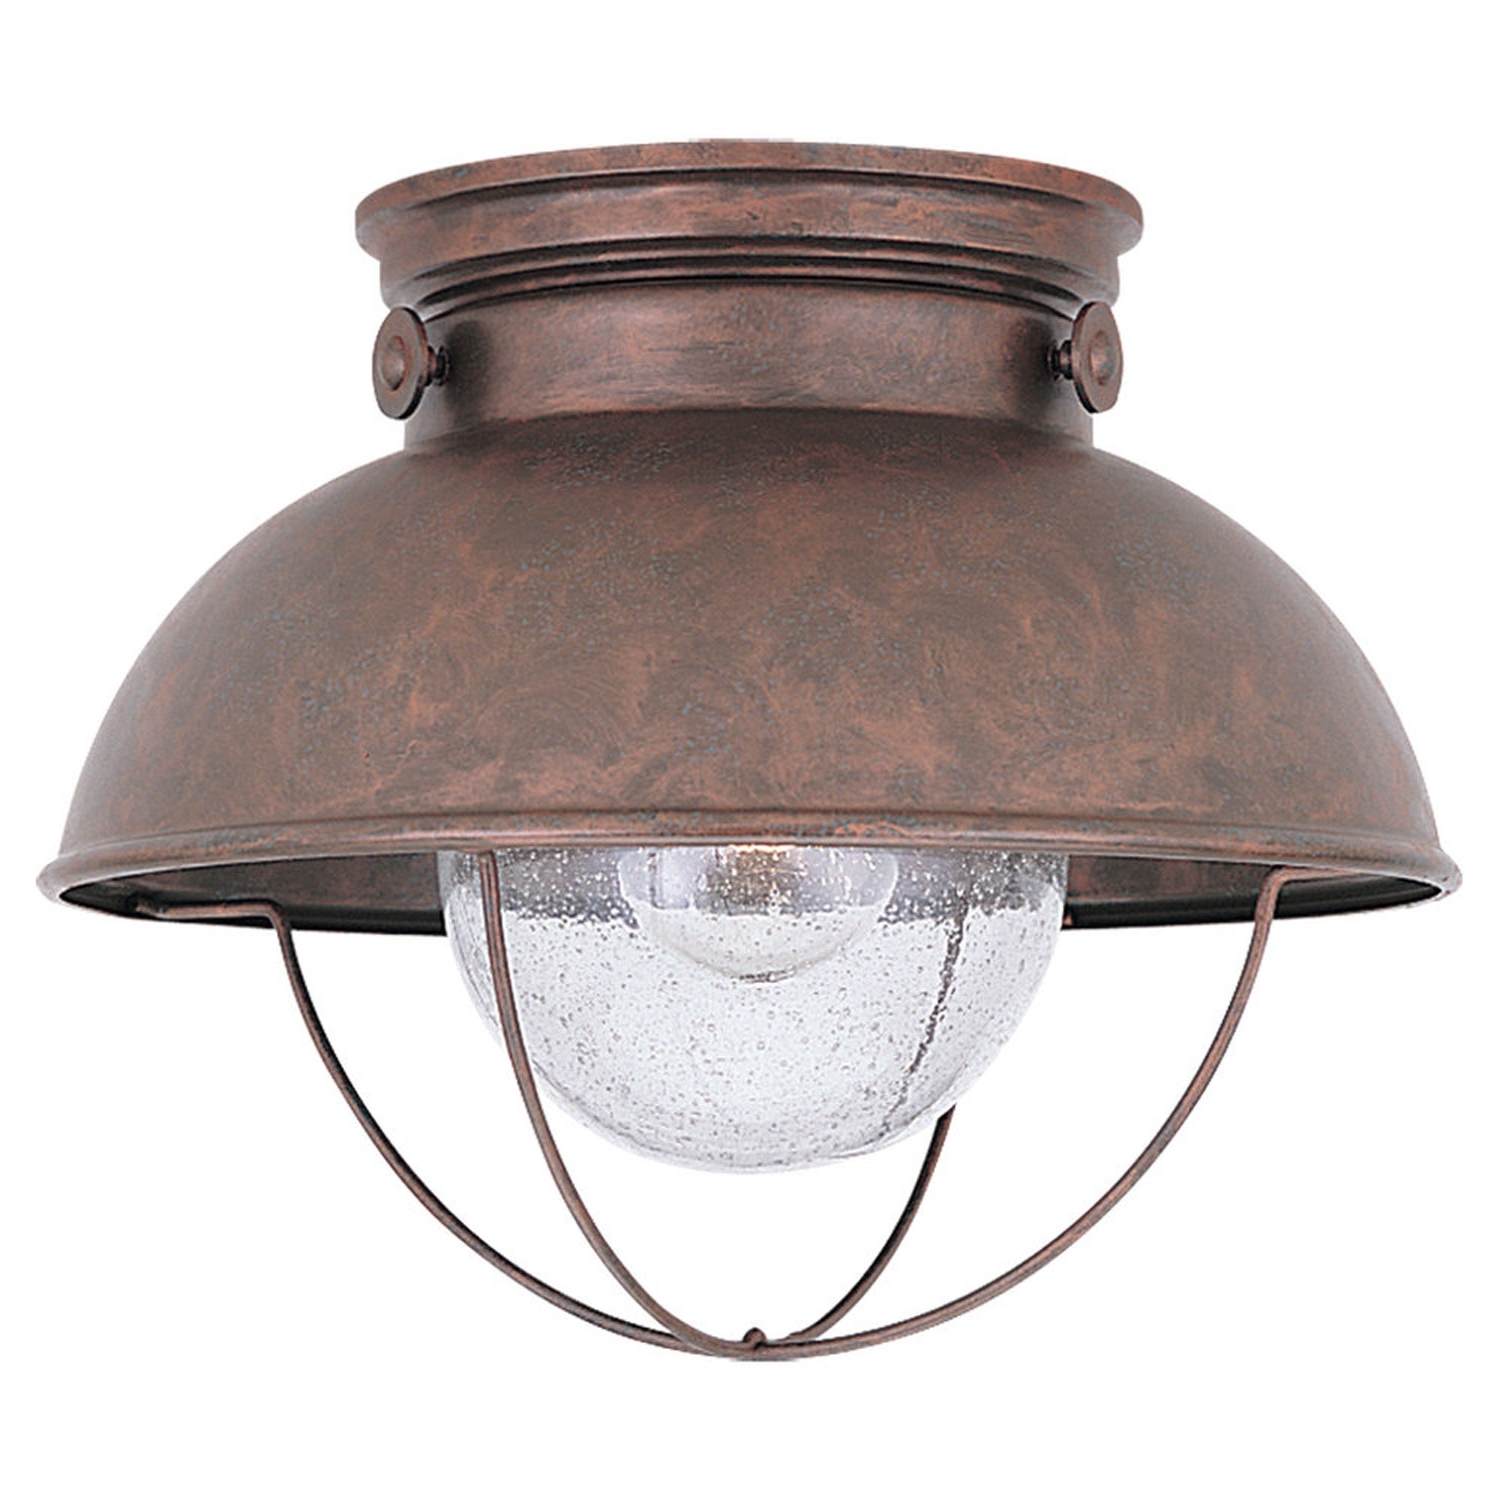 Outdoor Ceiling Lighting (View 7 of 20)